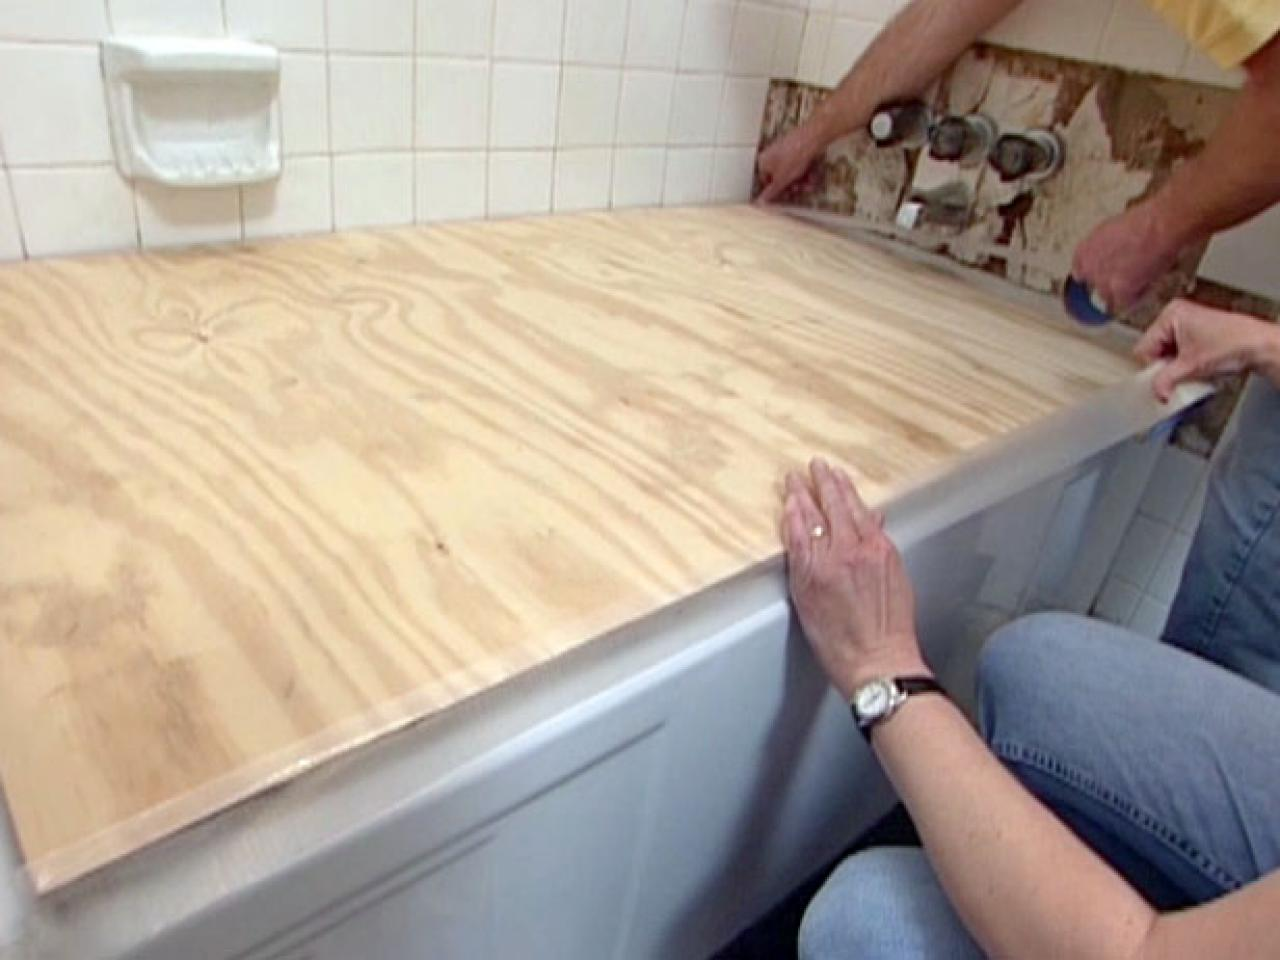 How To Begin Demolition Of A Bathroom Howtos DIY - Bathroom reno steps